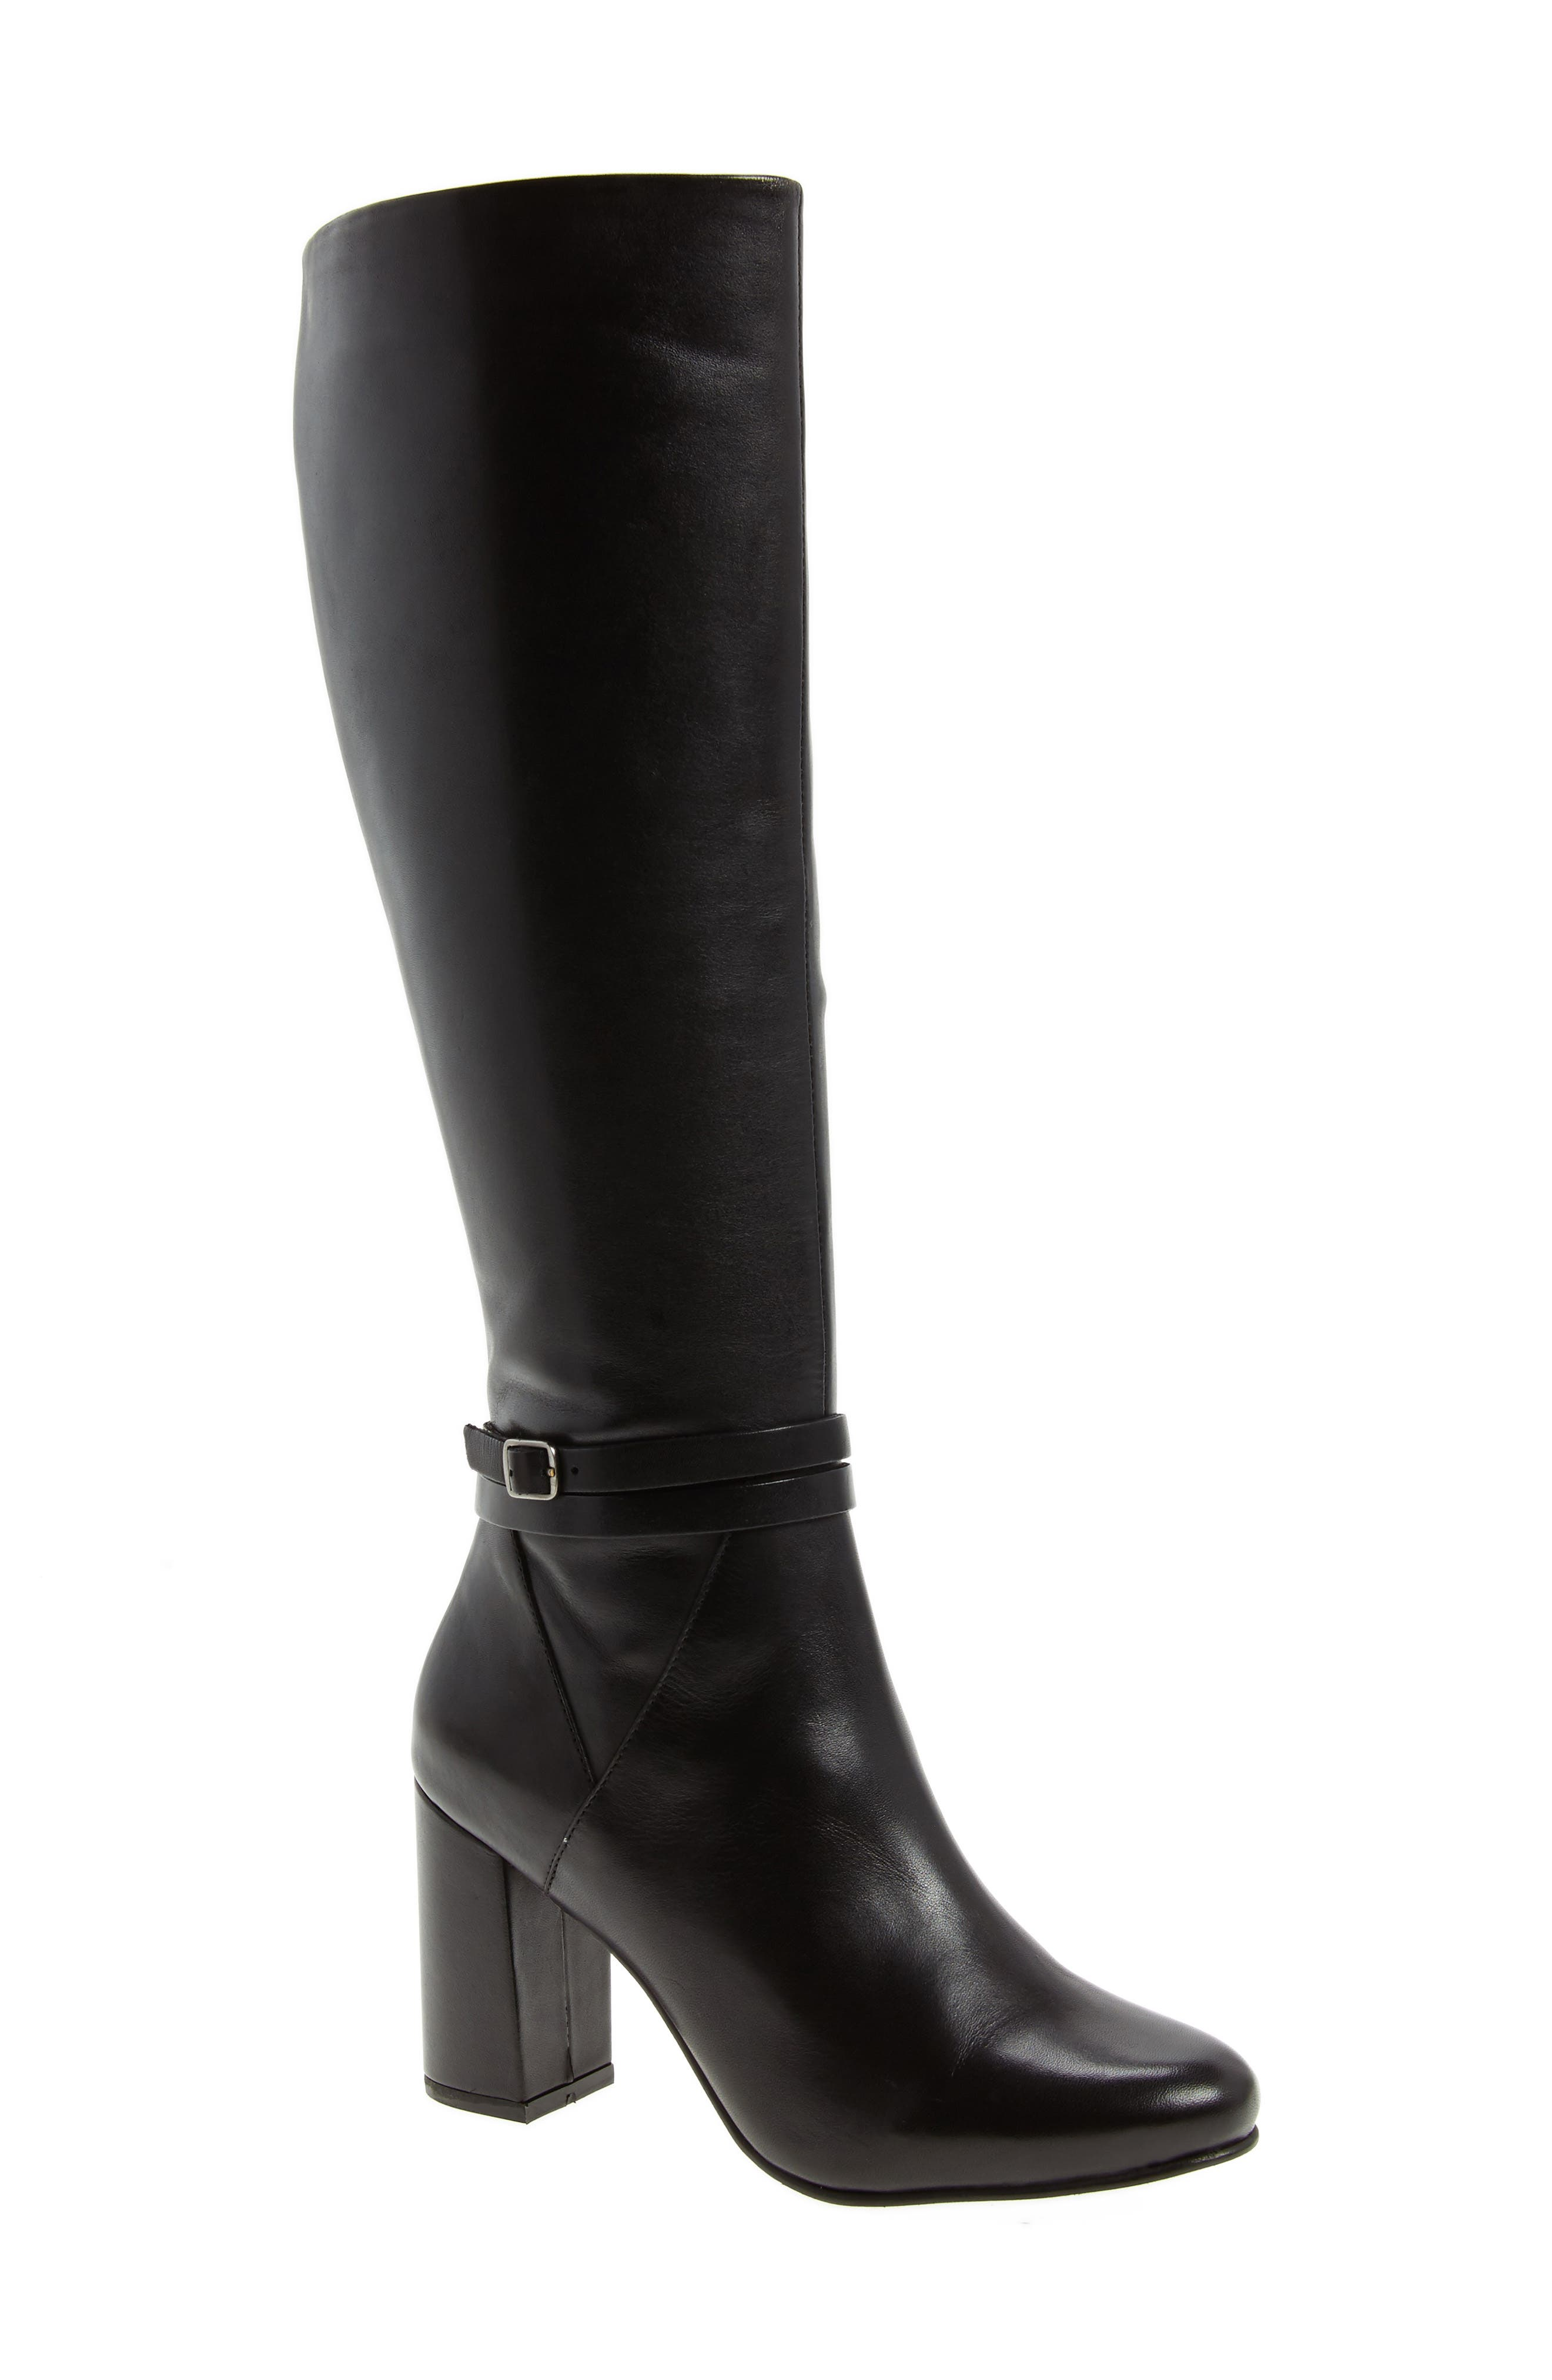 Ovation Knee High Boot,                         Main,                         color, 001